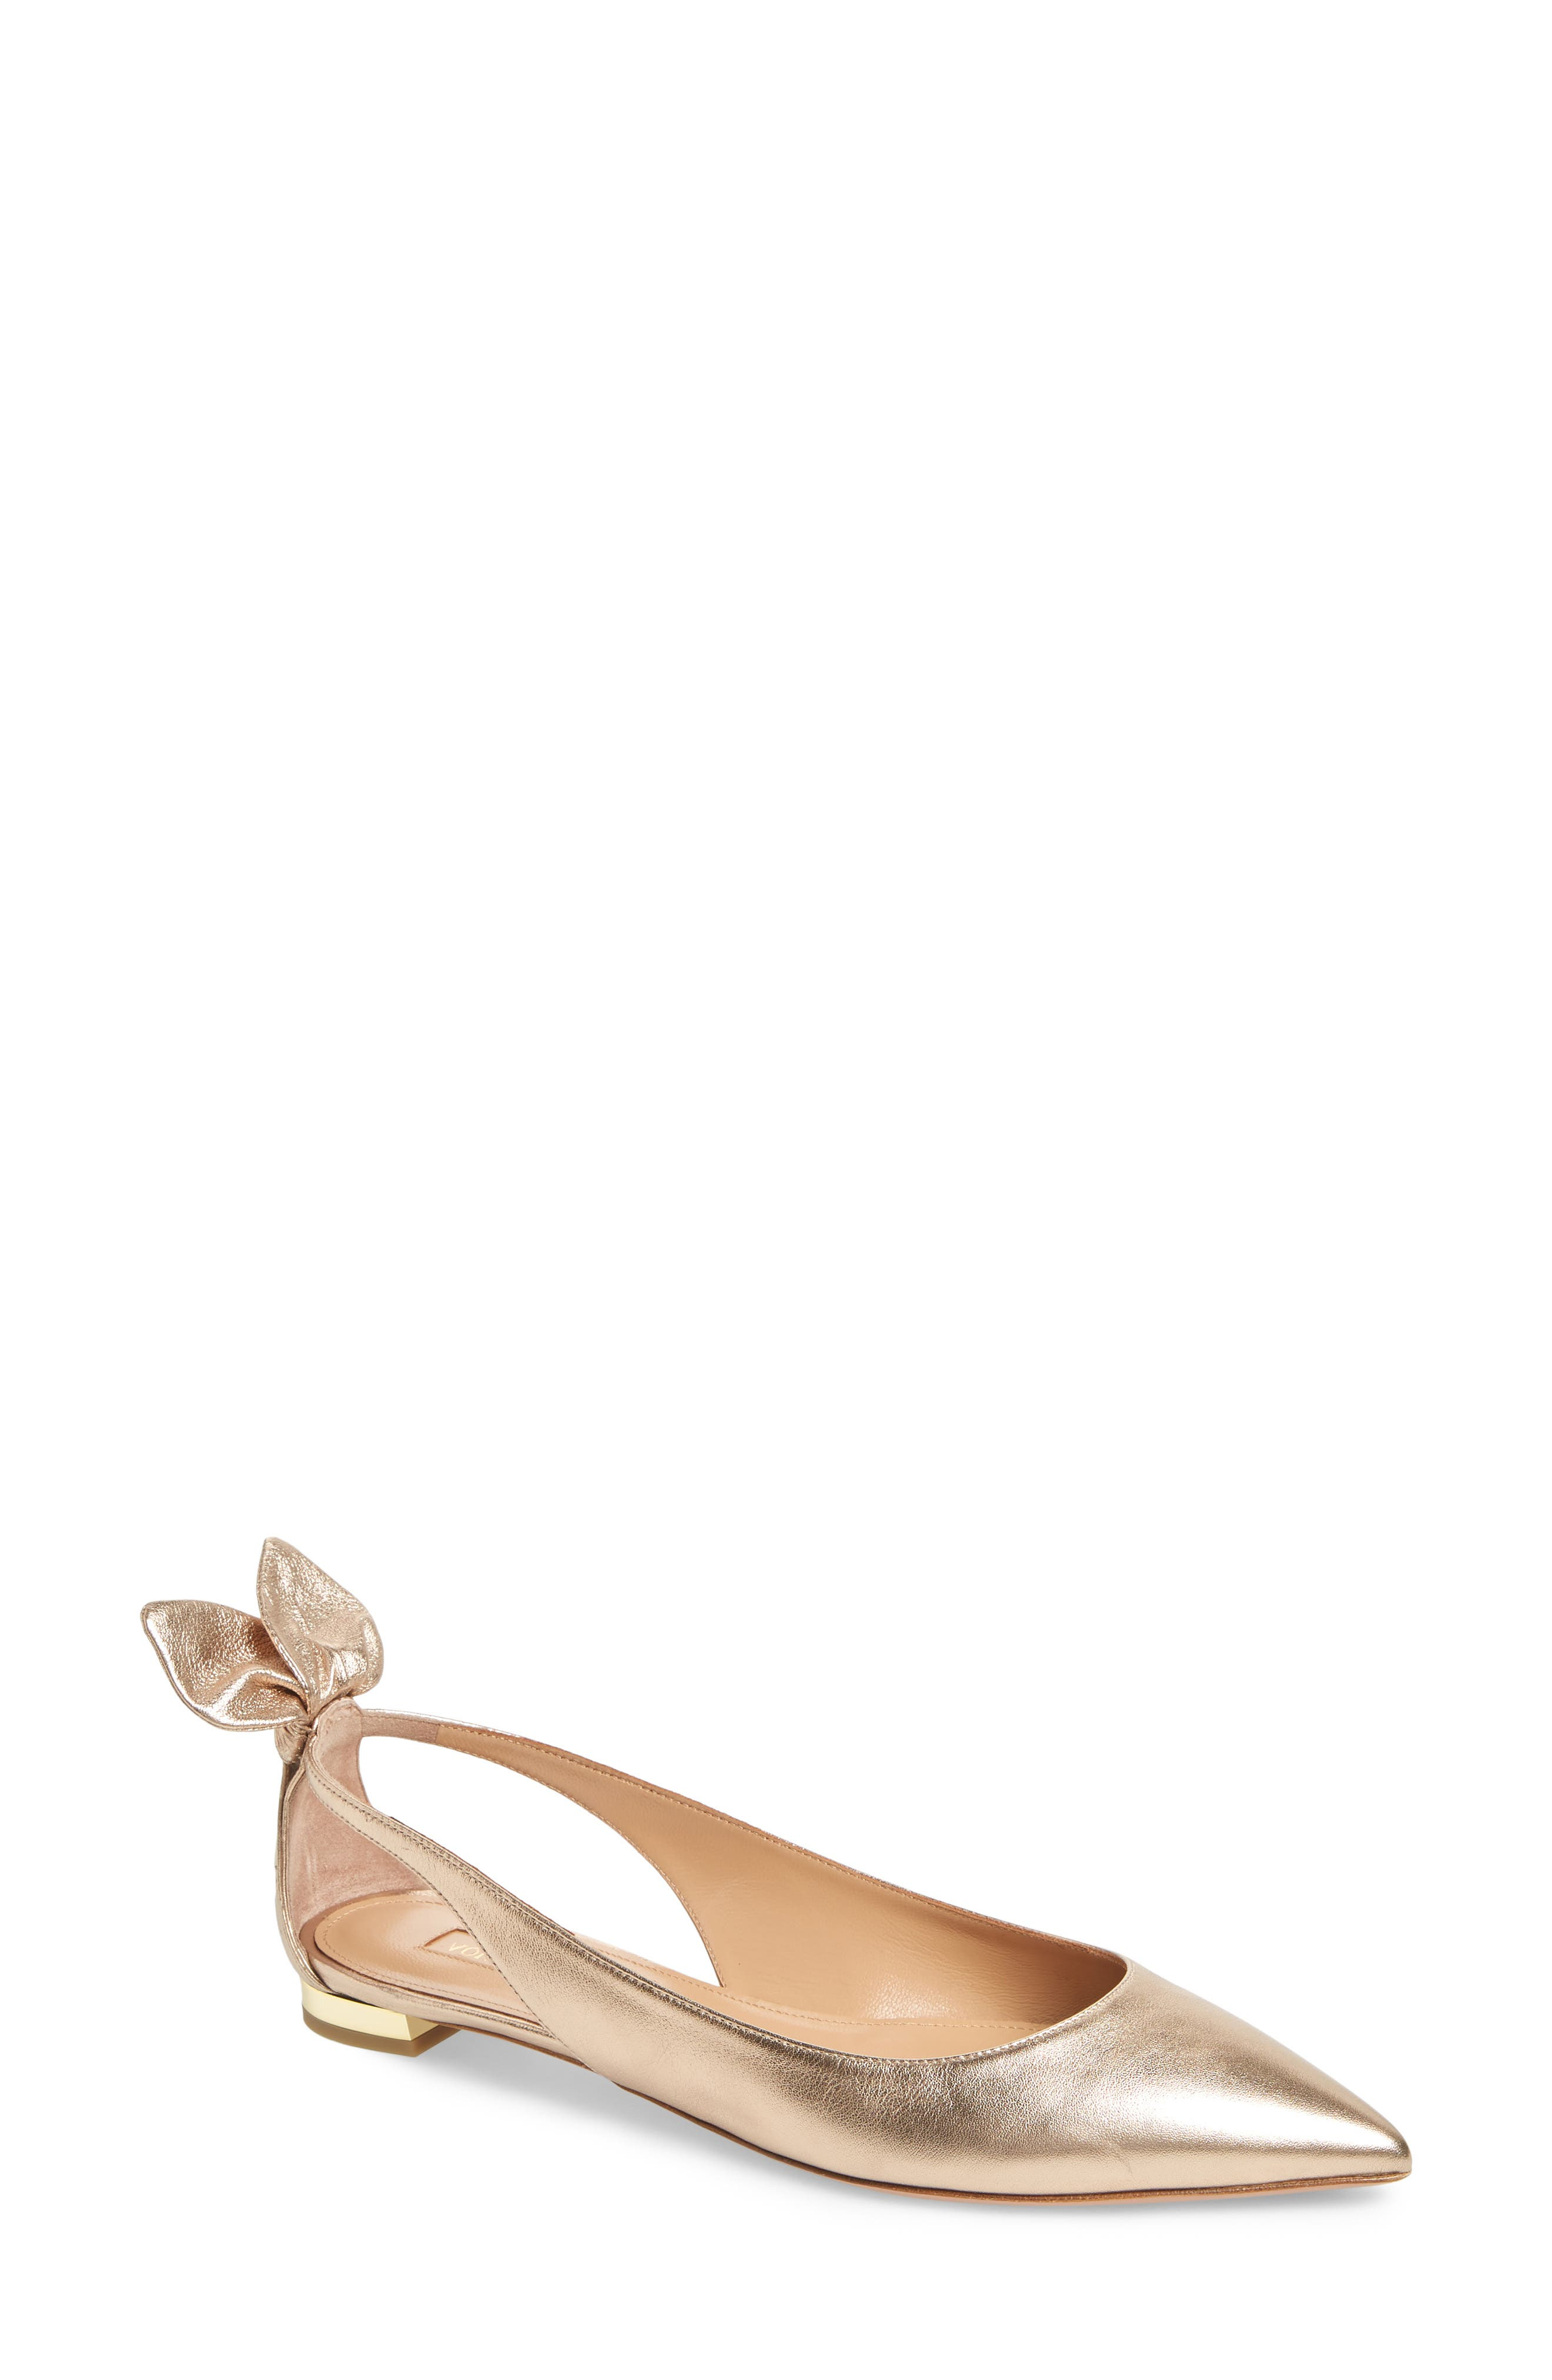 Aquazzura Deneuve Bow Pointy Toe Flat - Metallic